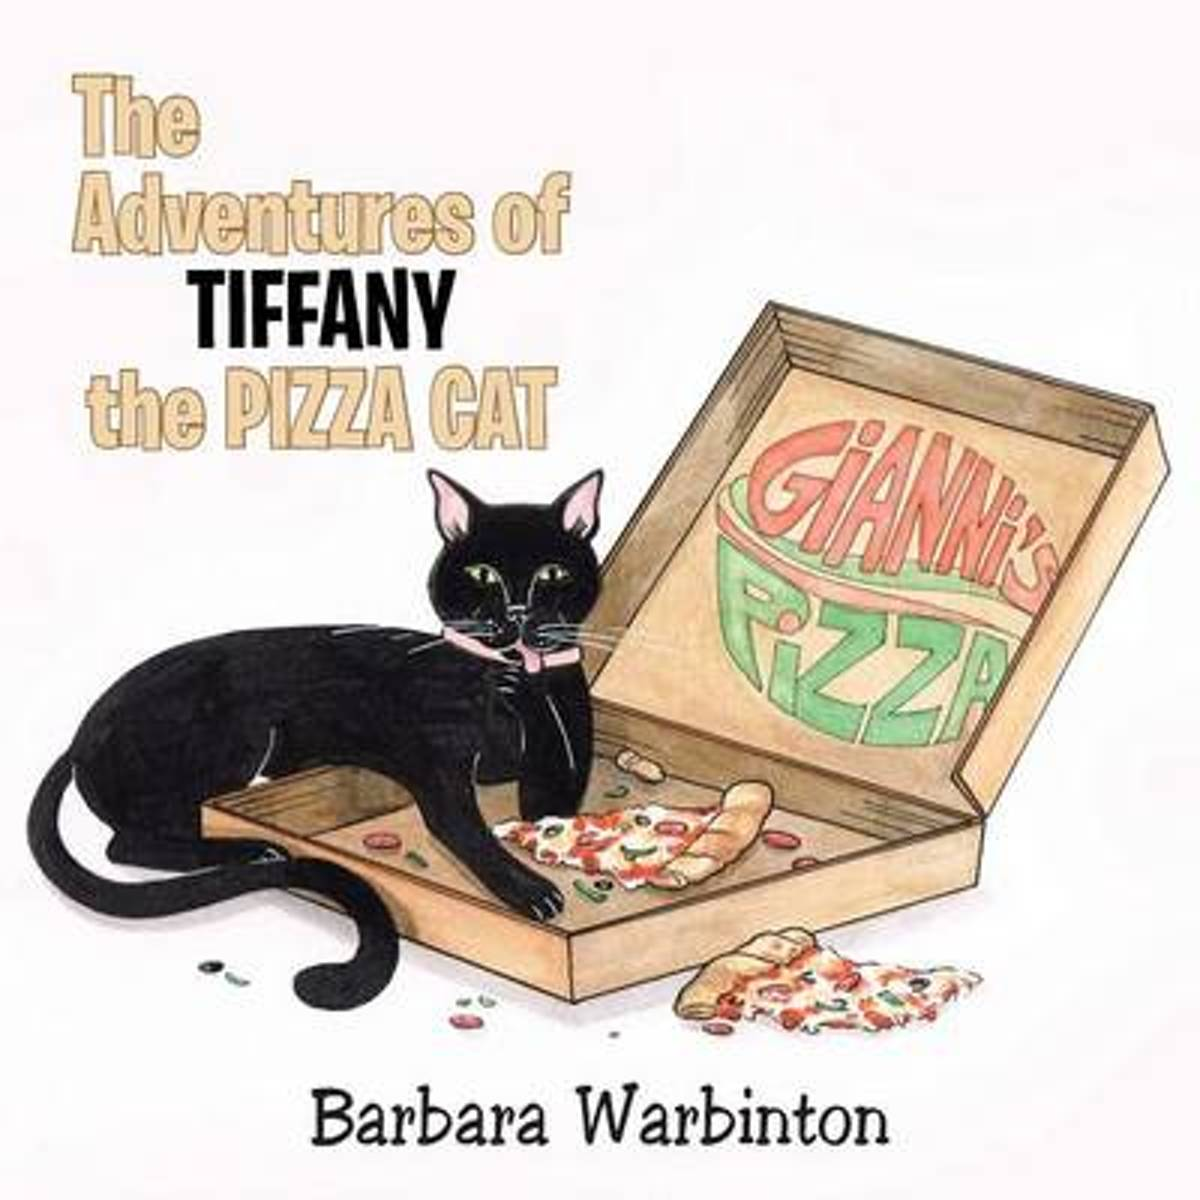 The Adventures of Tiffany the Pizza Cat